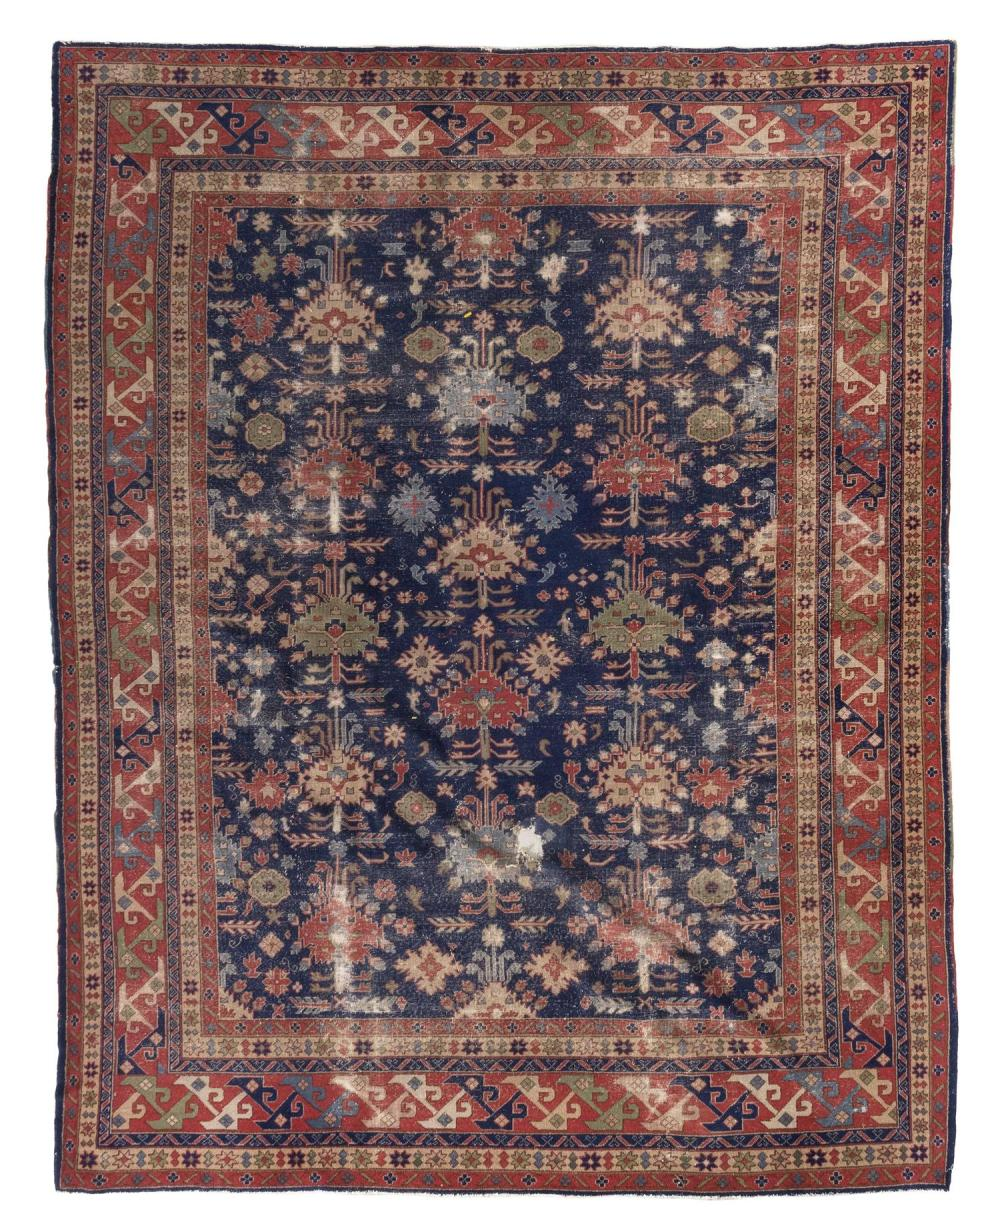 "ORIENTAL RUG: SPARTA 9'1"" x 11'9"" In a Caucasian design. Three columns of a variety of light blue, pale green, red and tan stylized.."